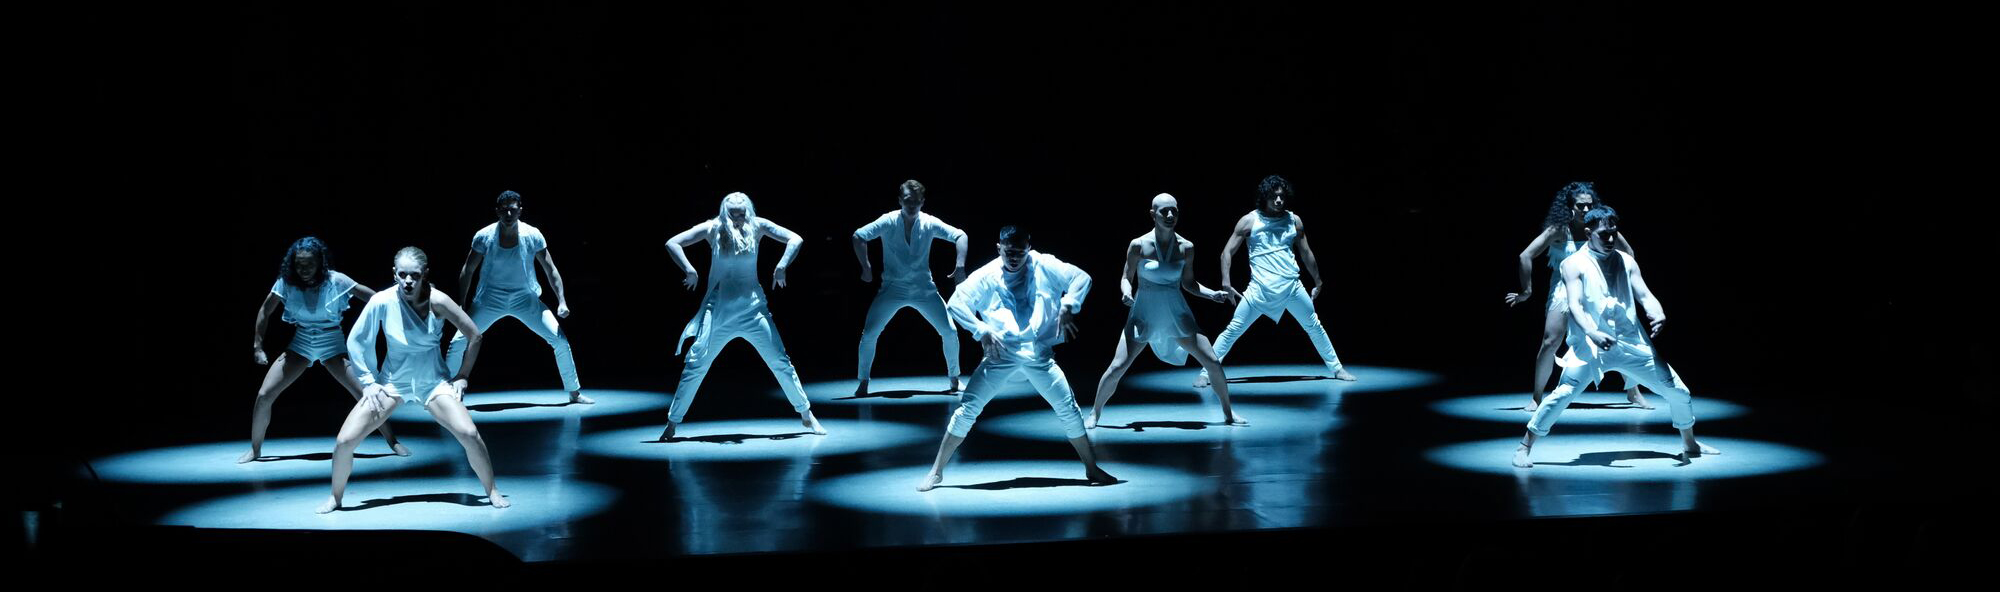 SO YOU THINK YOU CAN DANCE 5 – Photo credits: © FOX